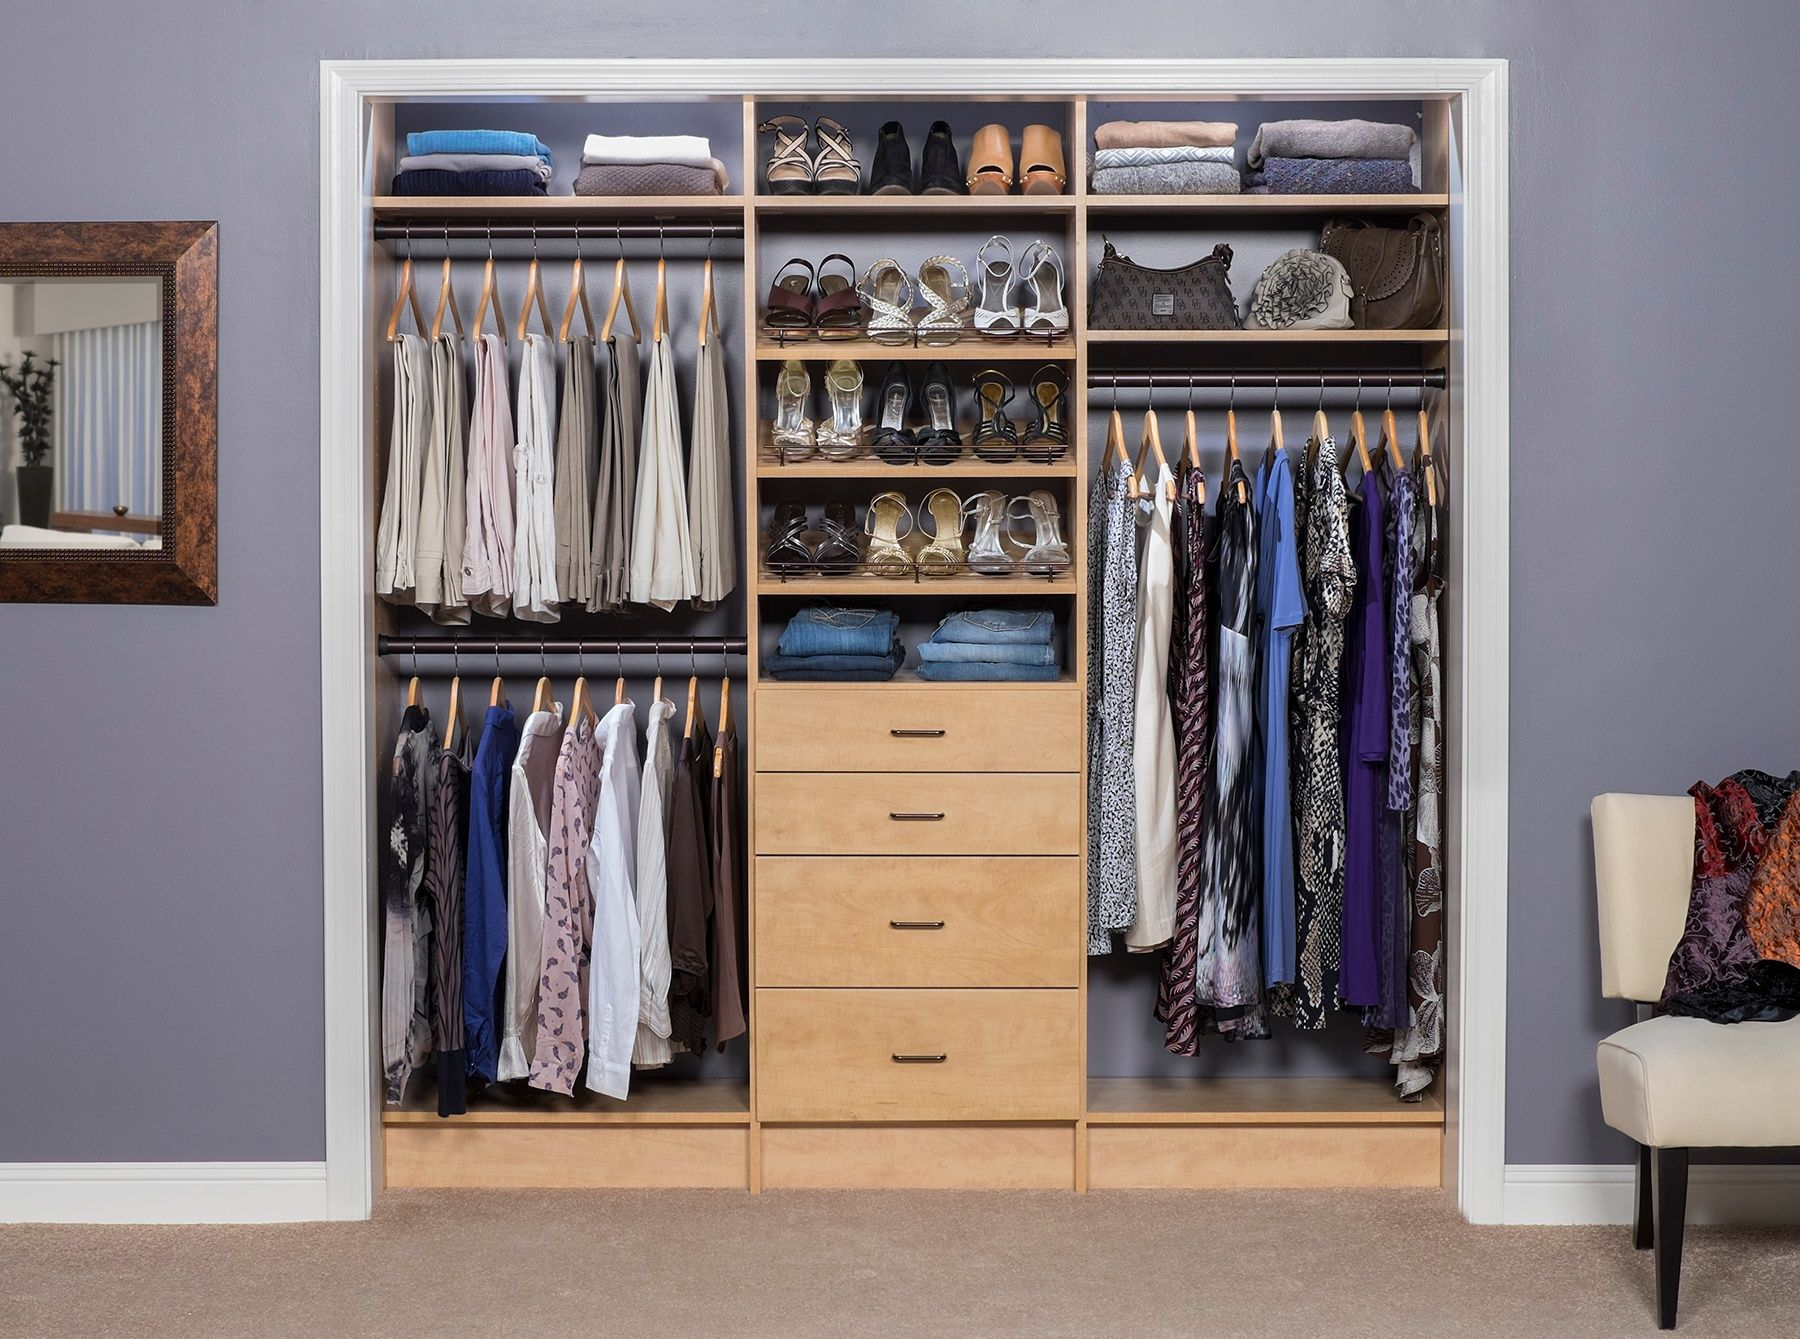 Designing and organizing custom closets closet systems into a beautiful and functional space request a free in home garage design estimate